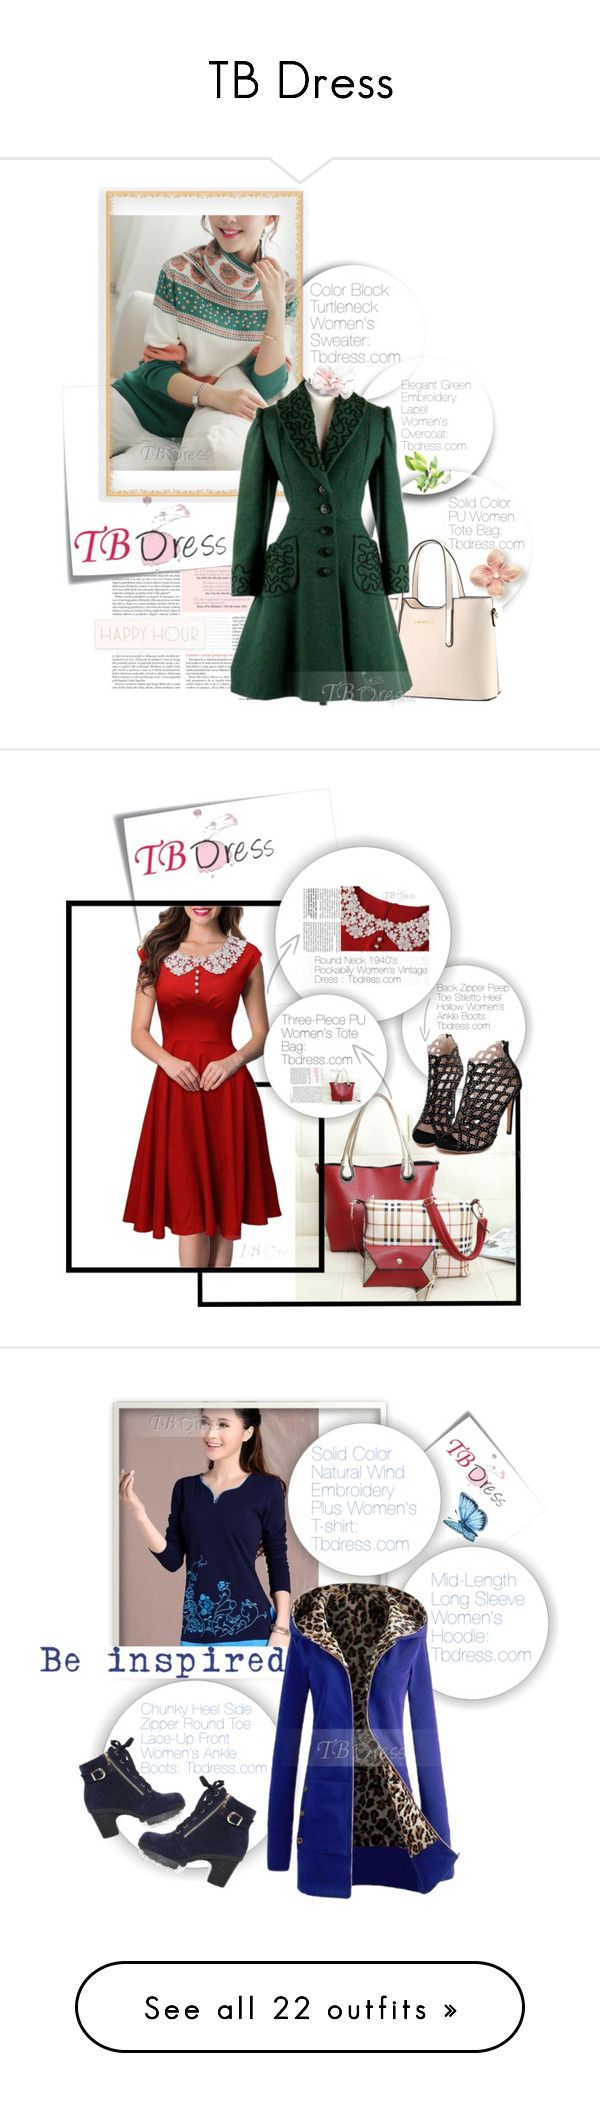 """""""TB Dress"""" by melisa-hasic on Polyvore featuring Post-It, Rosanna, dress, clothes, women, tbdress, vintage, White Label, men and OKA"""